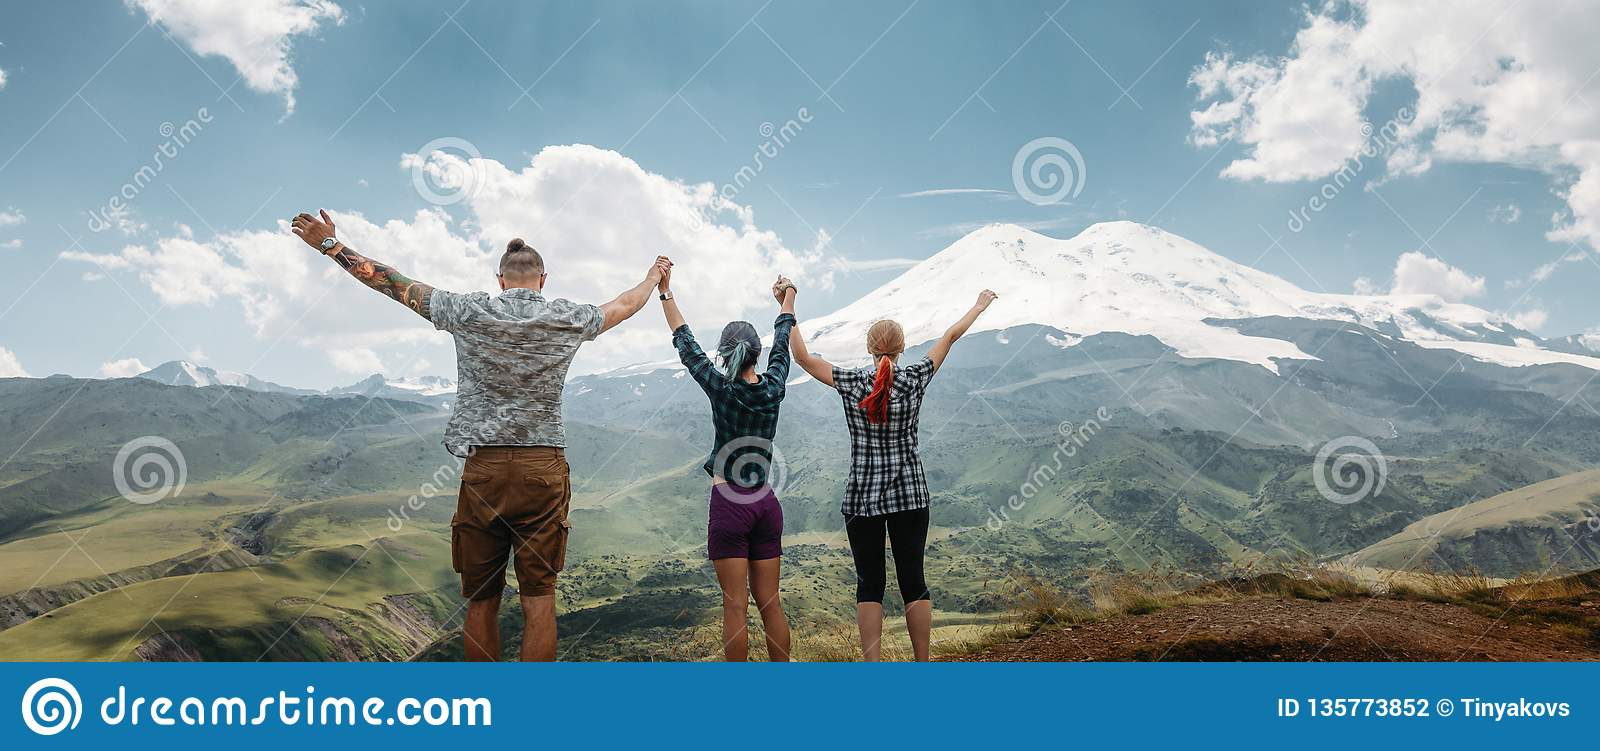 Three friends joined hands and raised their hands up, enjoying the view of the mountains in the summer. Lifestyle Travel Happy